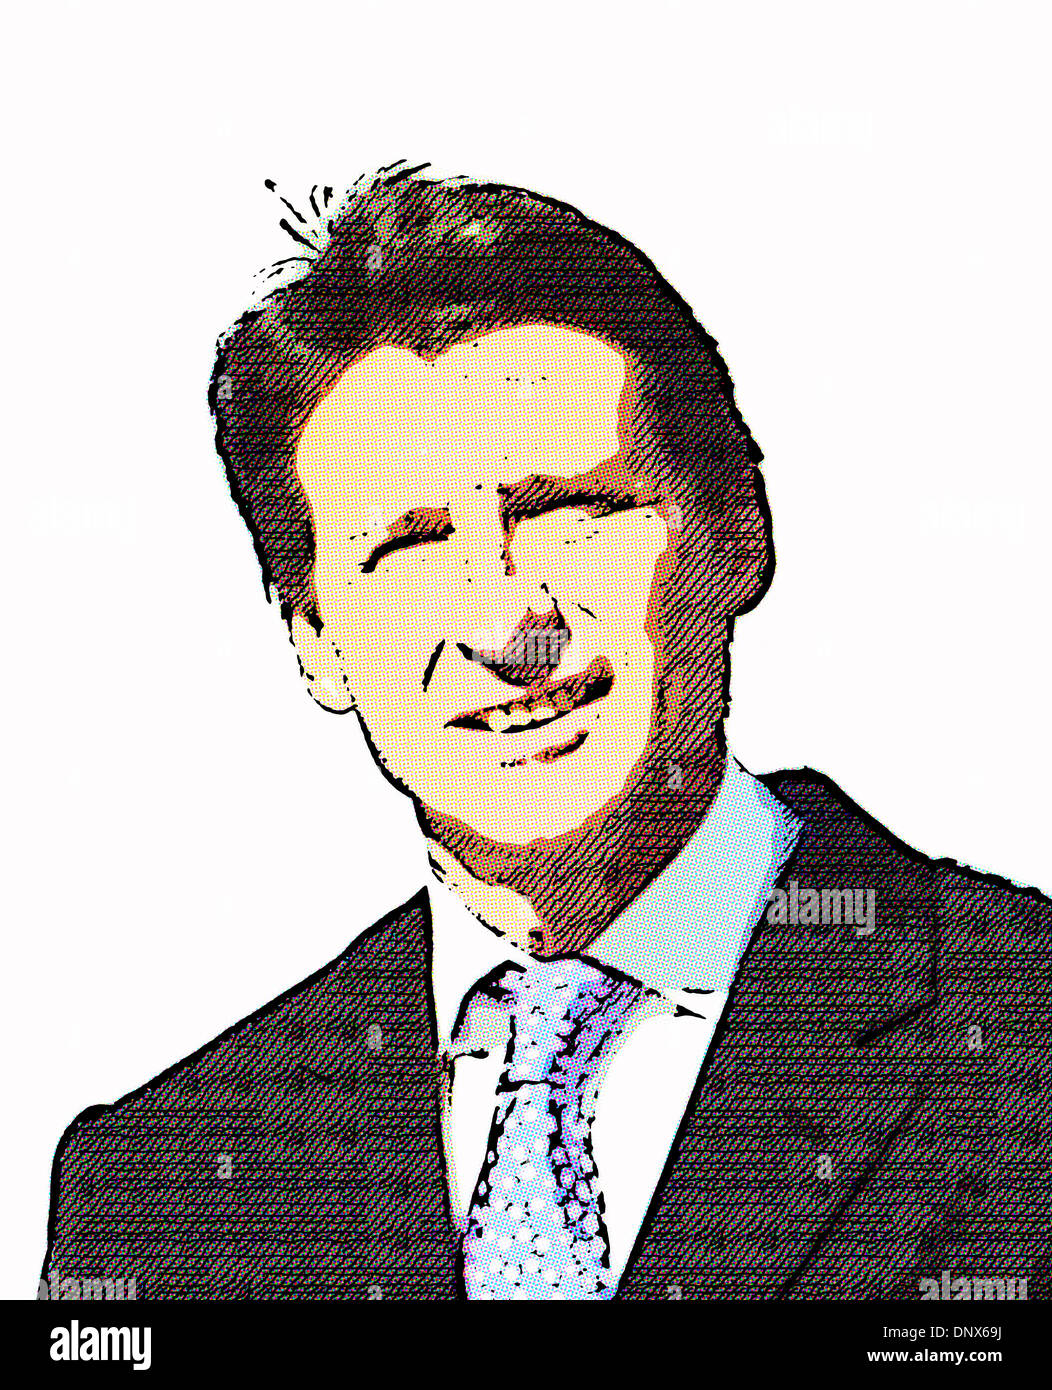 Lord Sebastian Coe portrait in half-dot cartoon form. - Stock Image